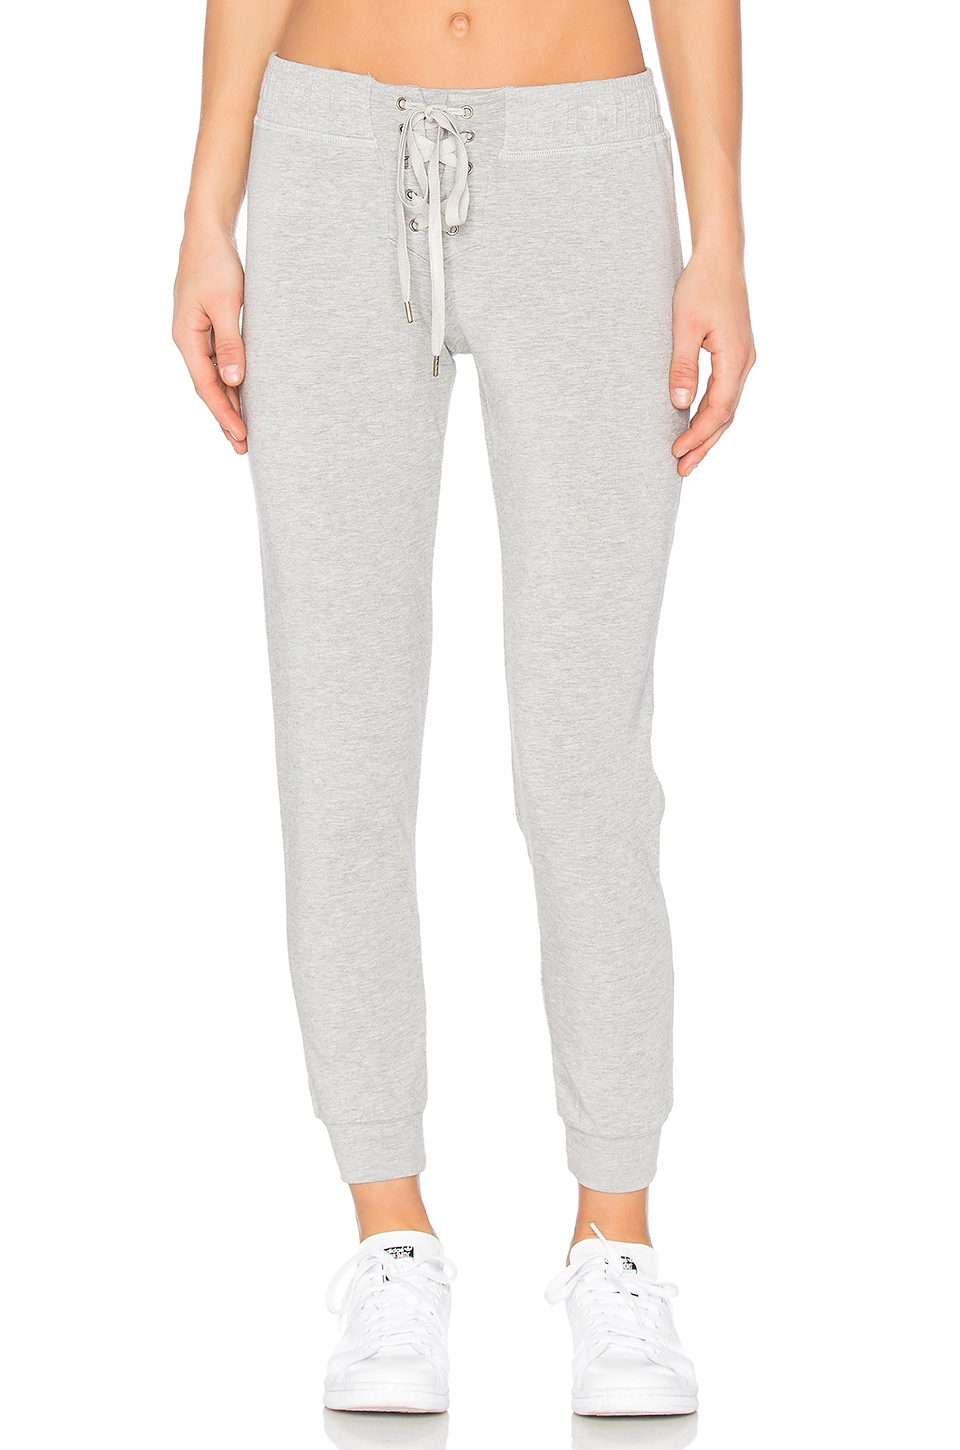 David Lerner Lace Front Track Pant in Medium Heather Grey